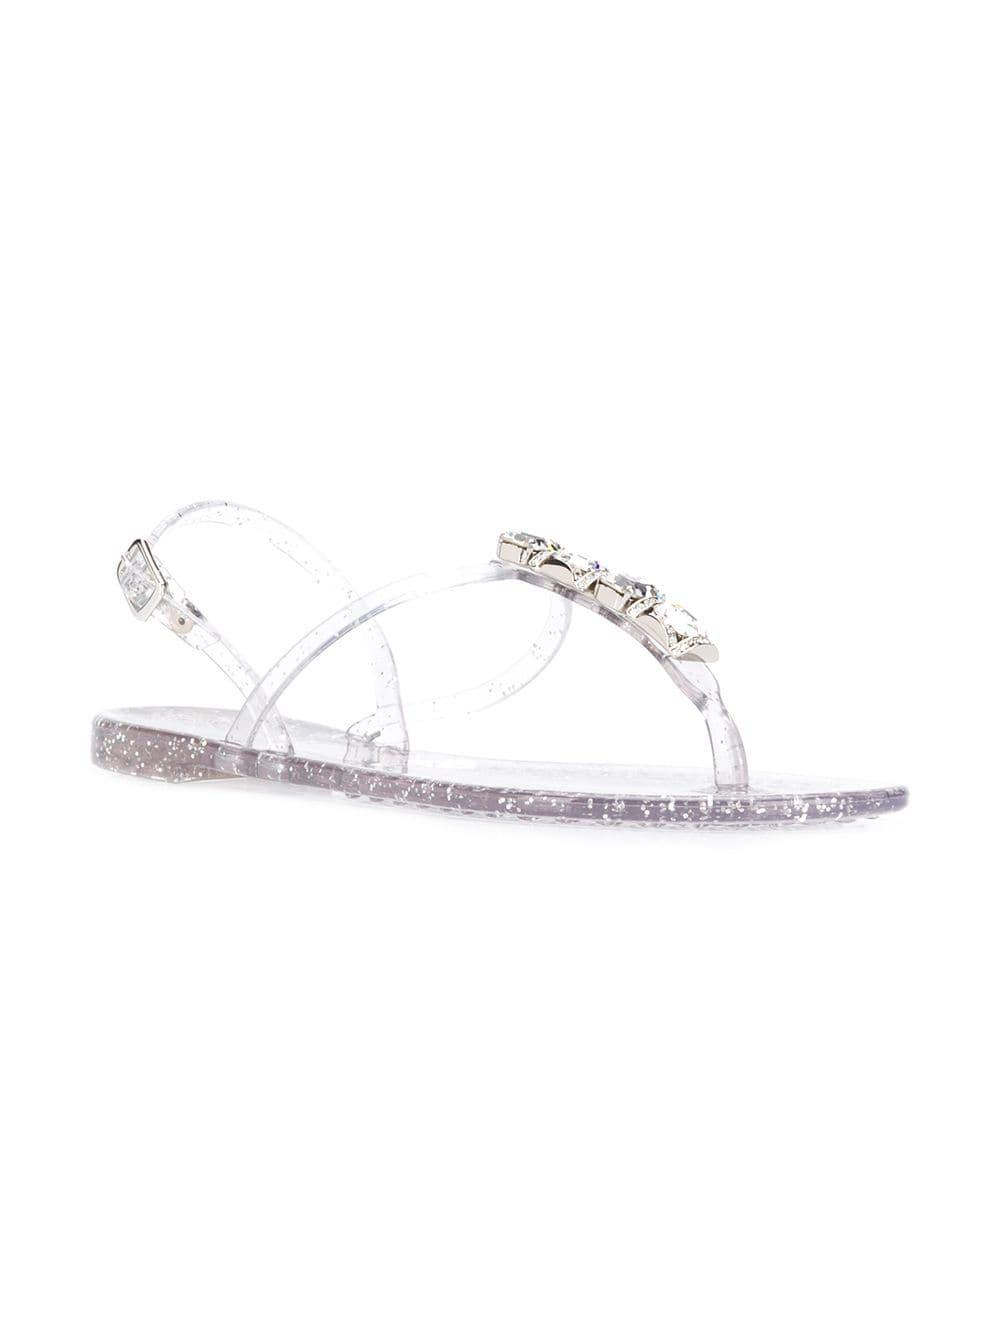 7840048a9cb Lyst - Casadei Jelly Sandals in Metallic